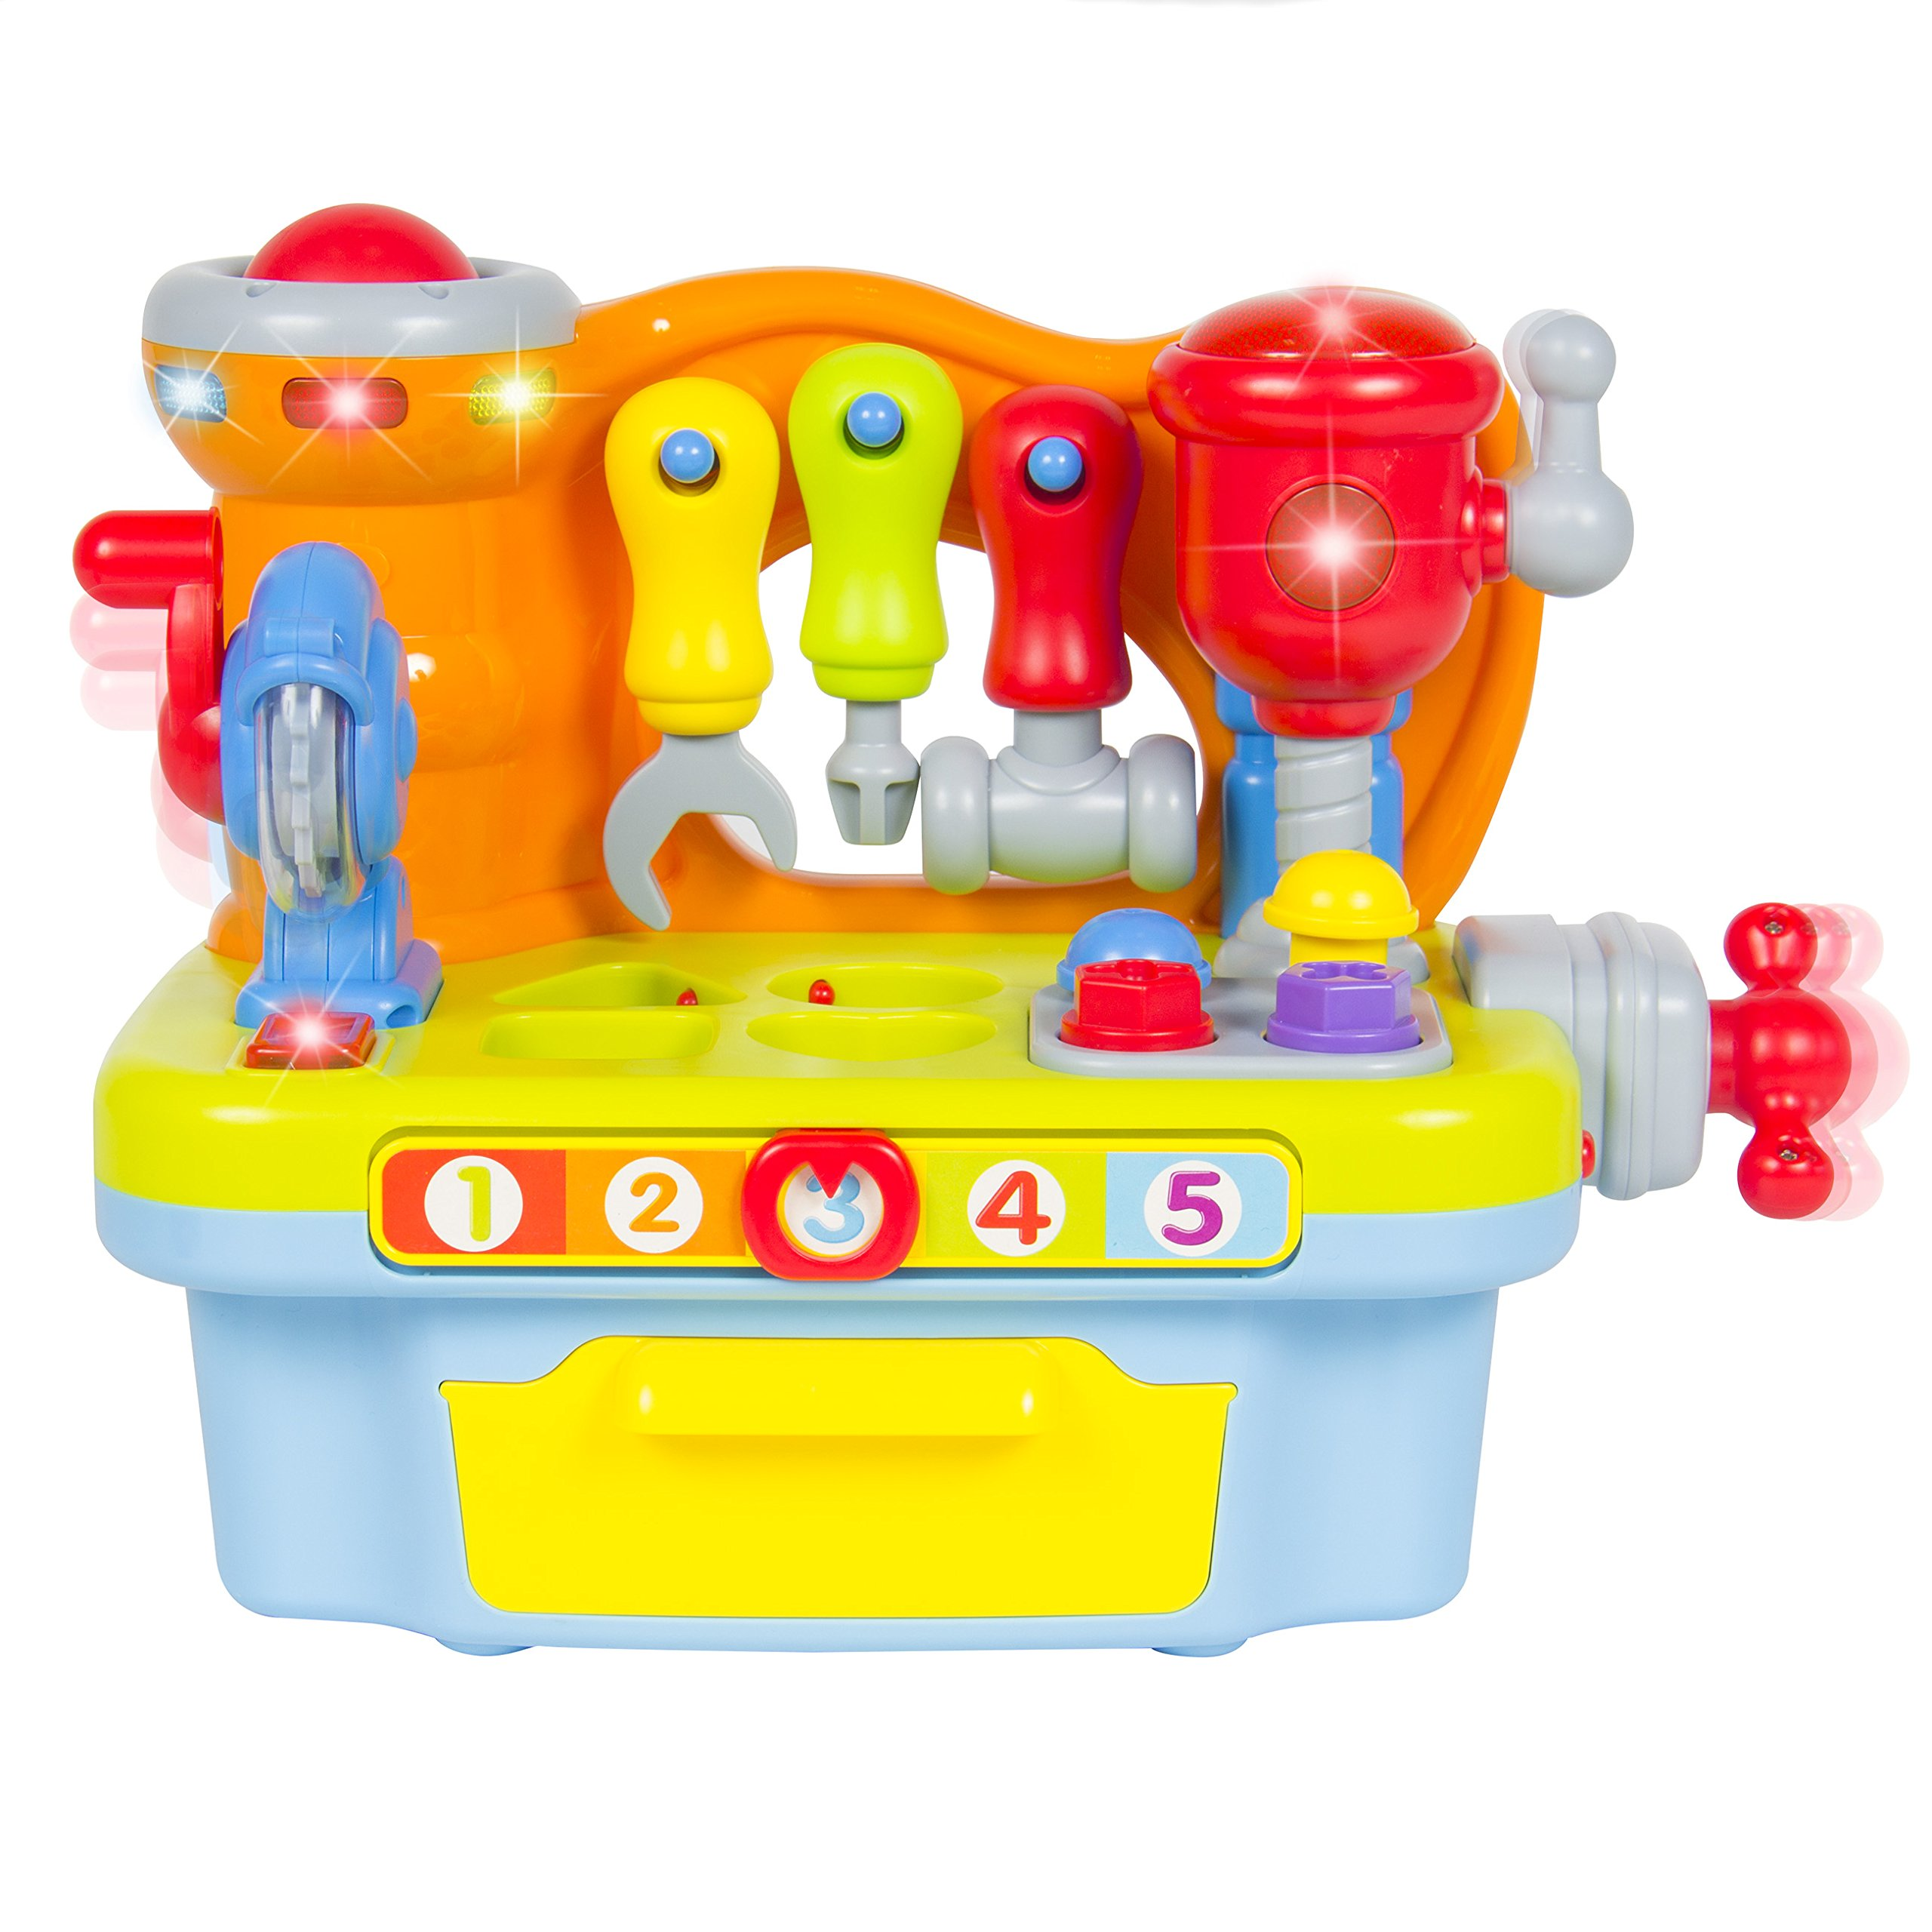 Best Choice Products Musical Learning Pretend Play Tool Workbench Toy, Fun Sound Effects & Lights by Best Choice Products (Image #1)